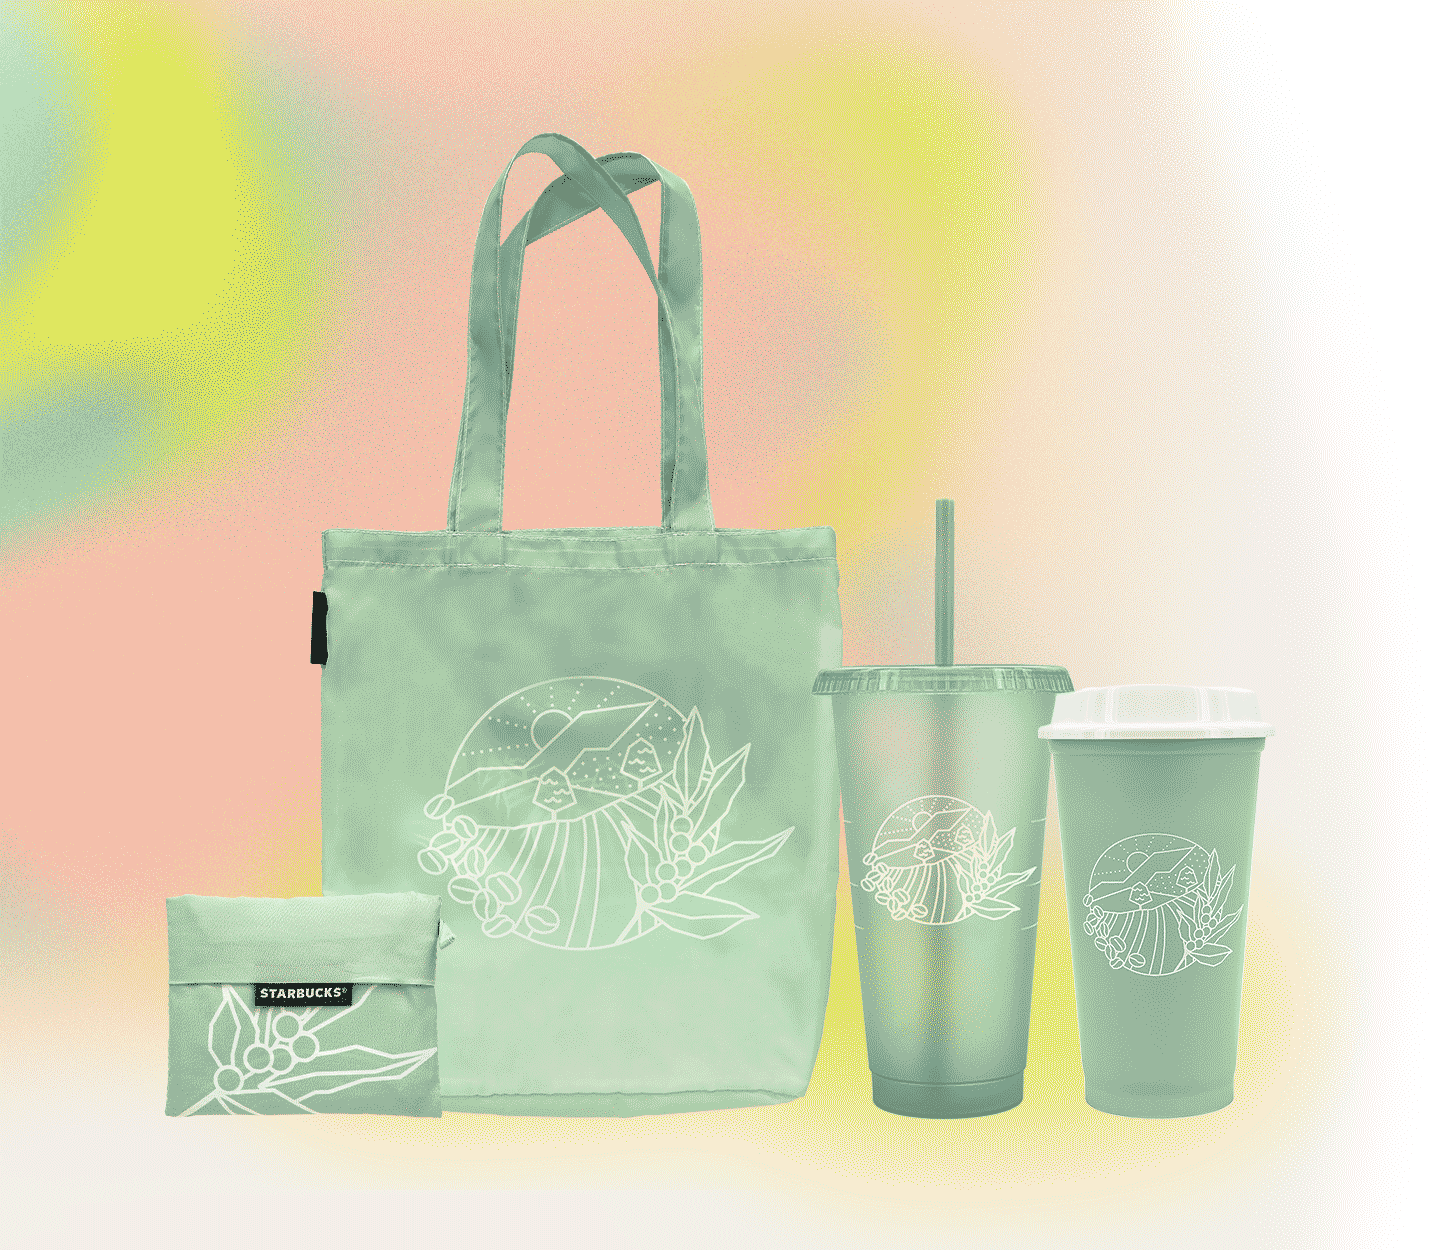 Light-green tinted tote bag, cup and tumbler